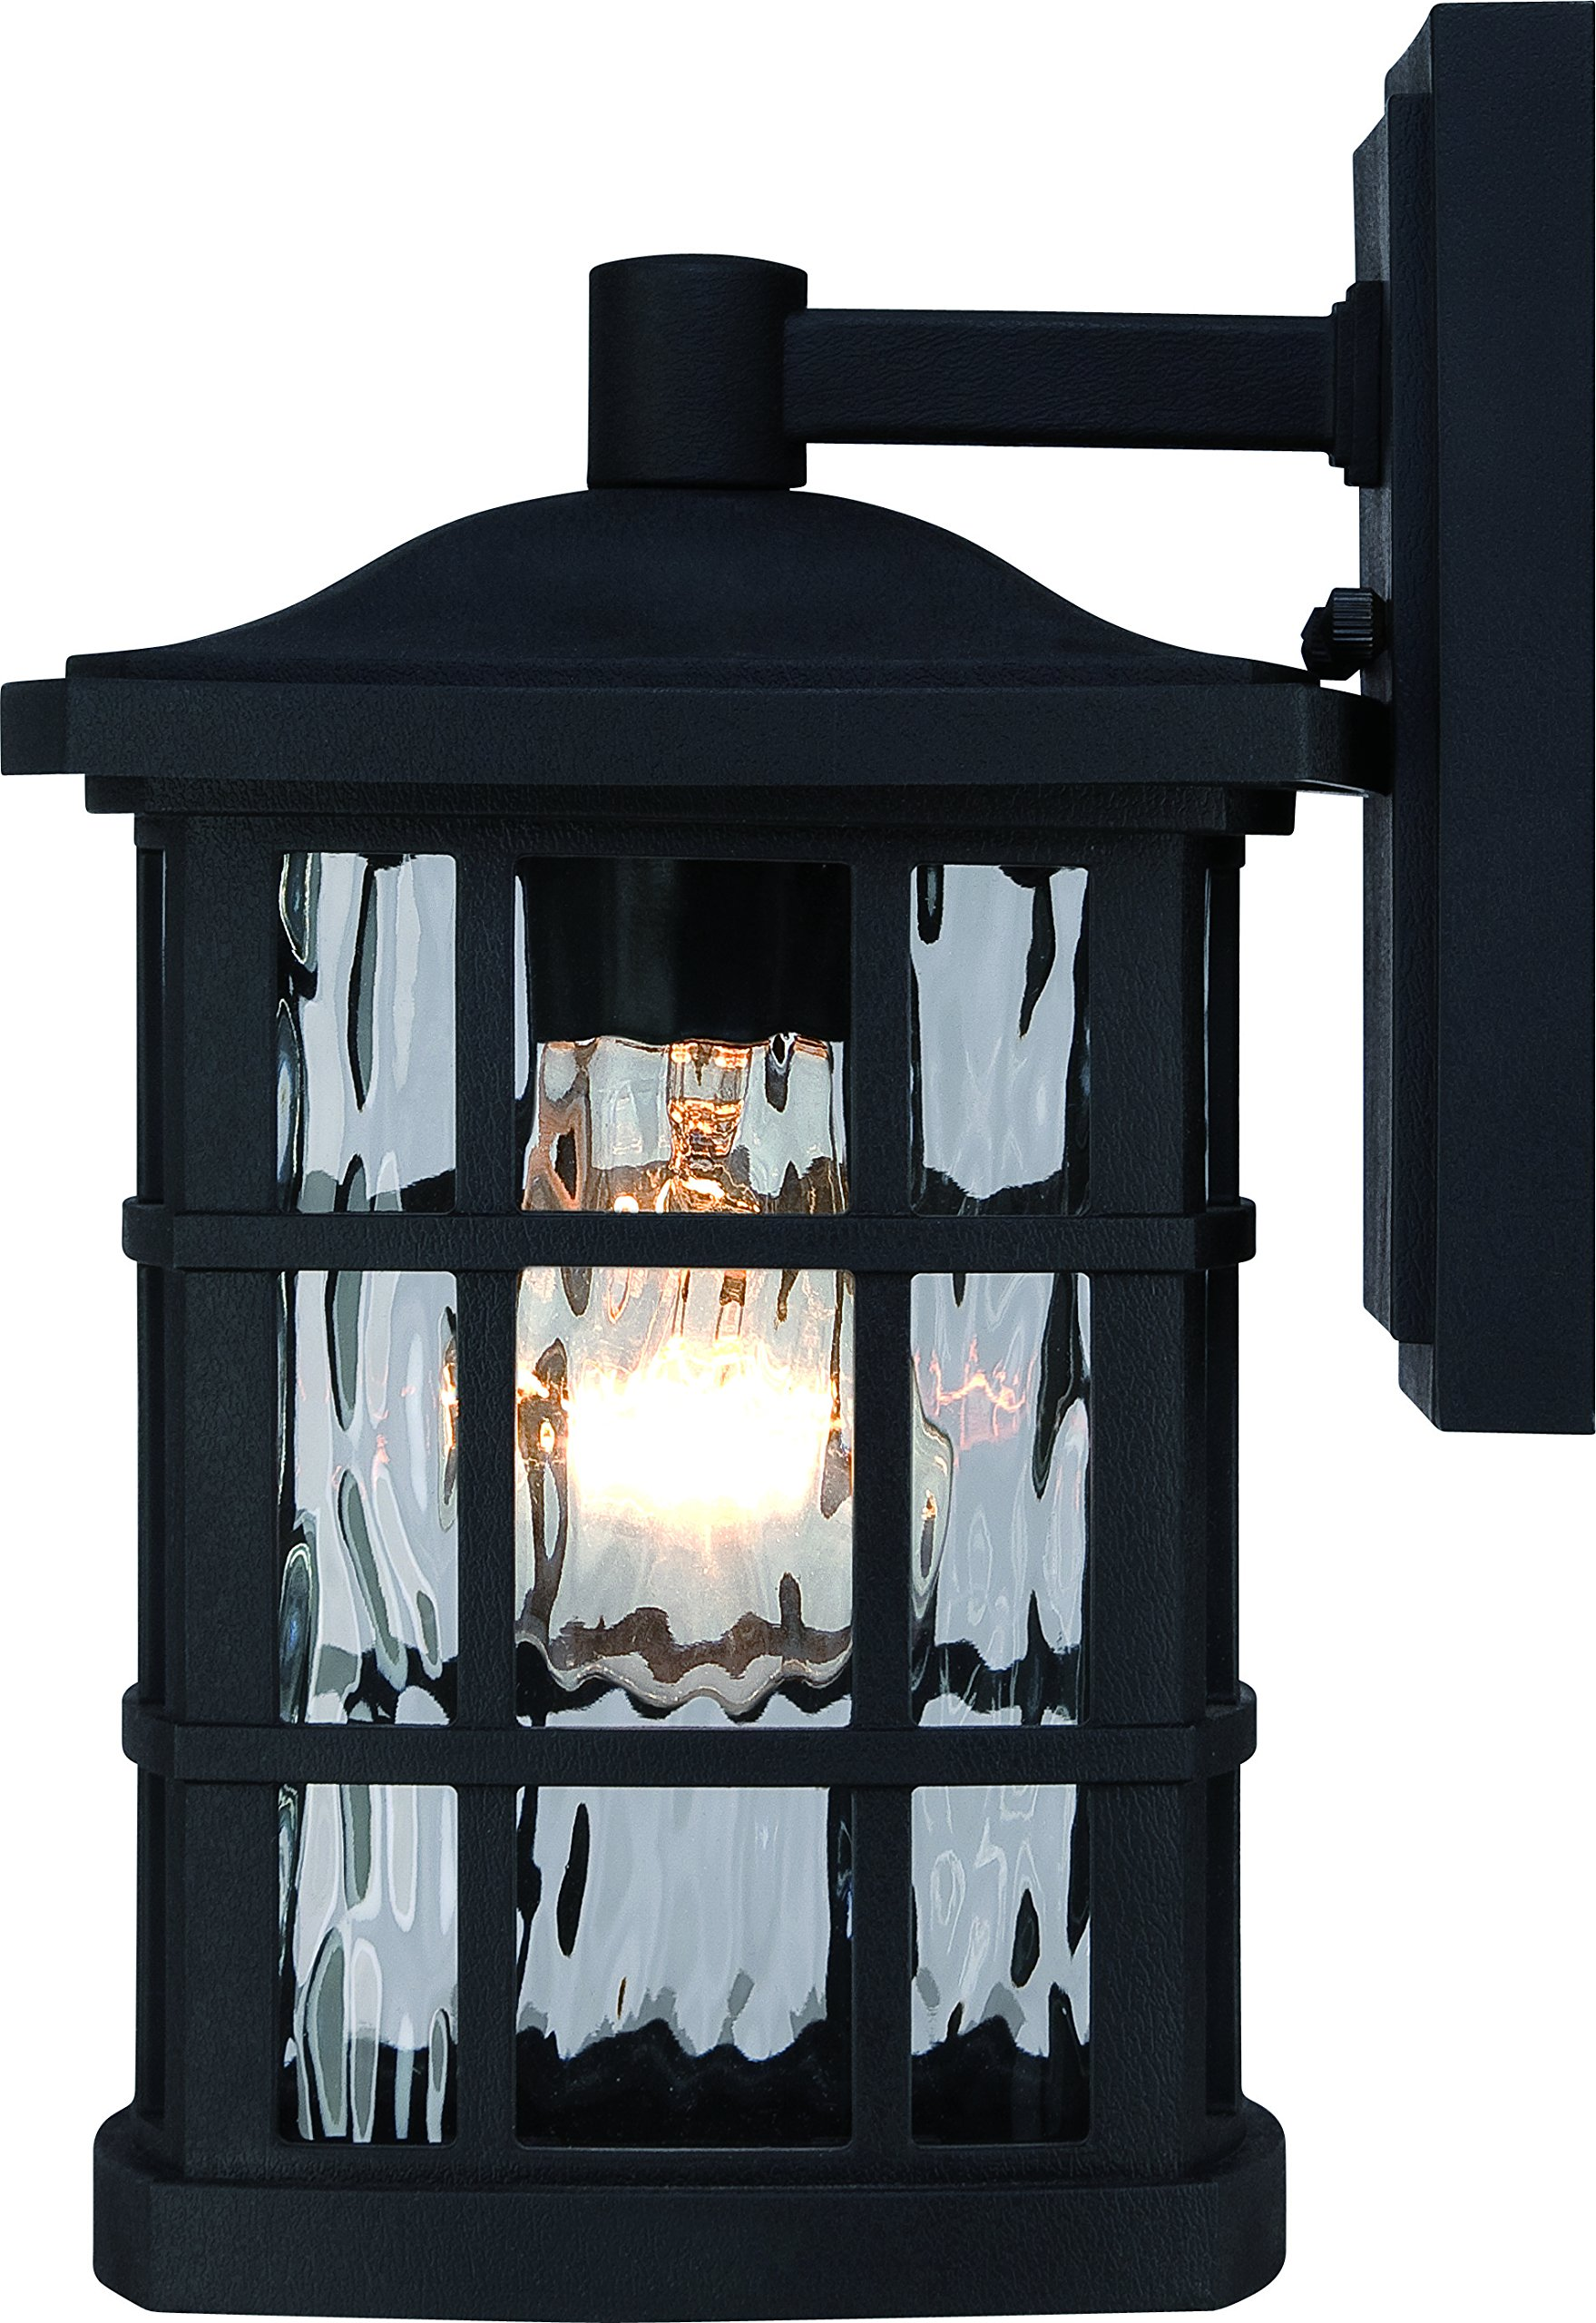 Luxury Craftsman Outdoor Wall Light, Small Size: 10.5'' H x 6.5'' W, with Tudor Style Elements, Highly-Detailed Design, High-End Black Silk Finish and Water Glass, UQL1230 by Urban Ambiance